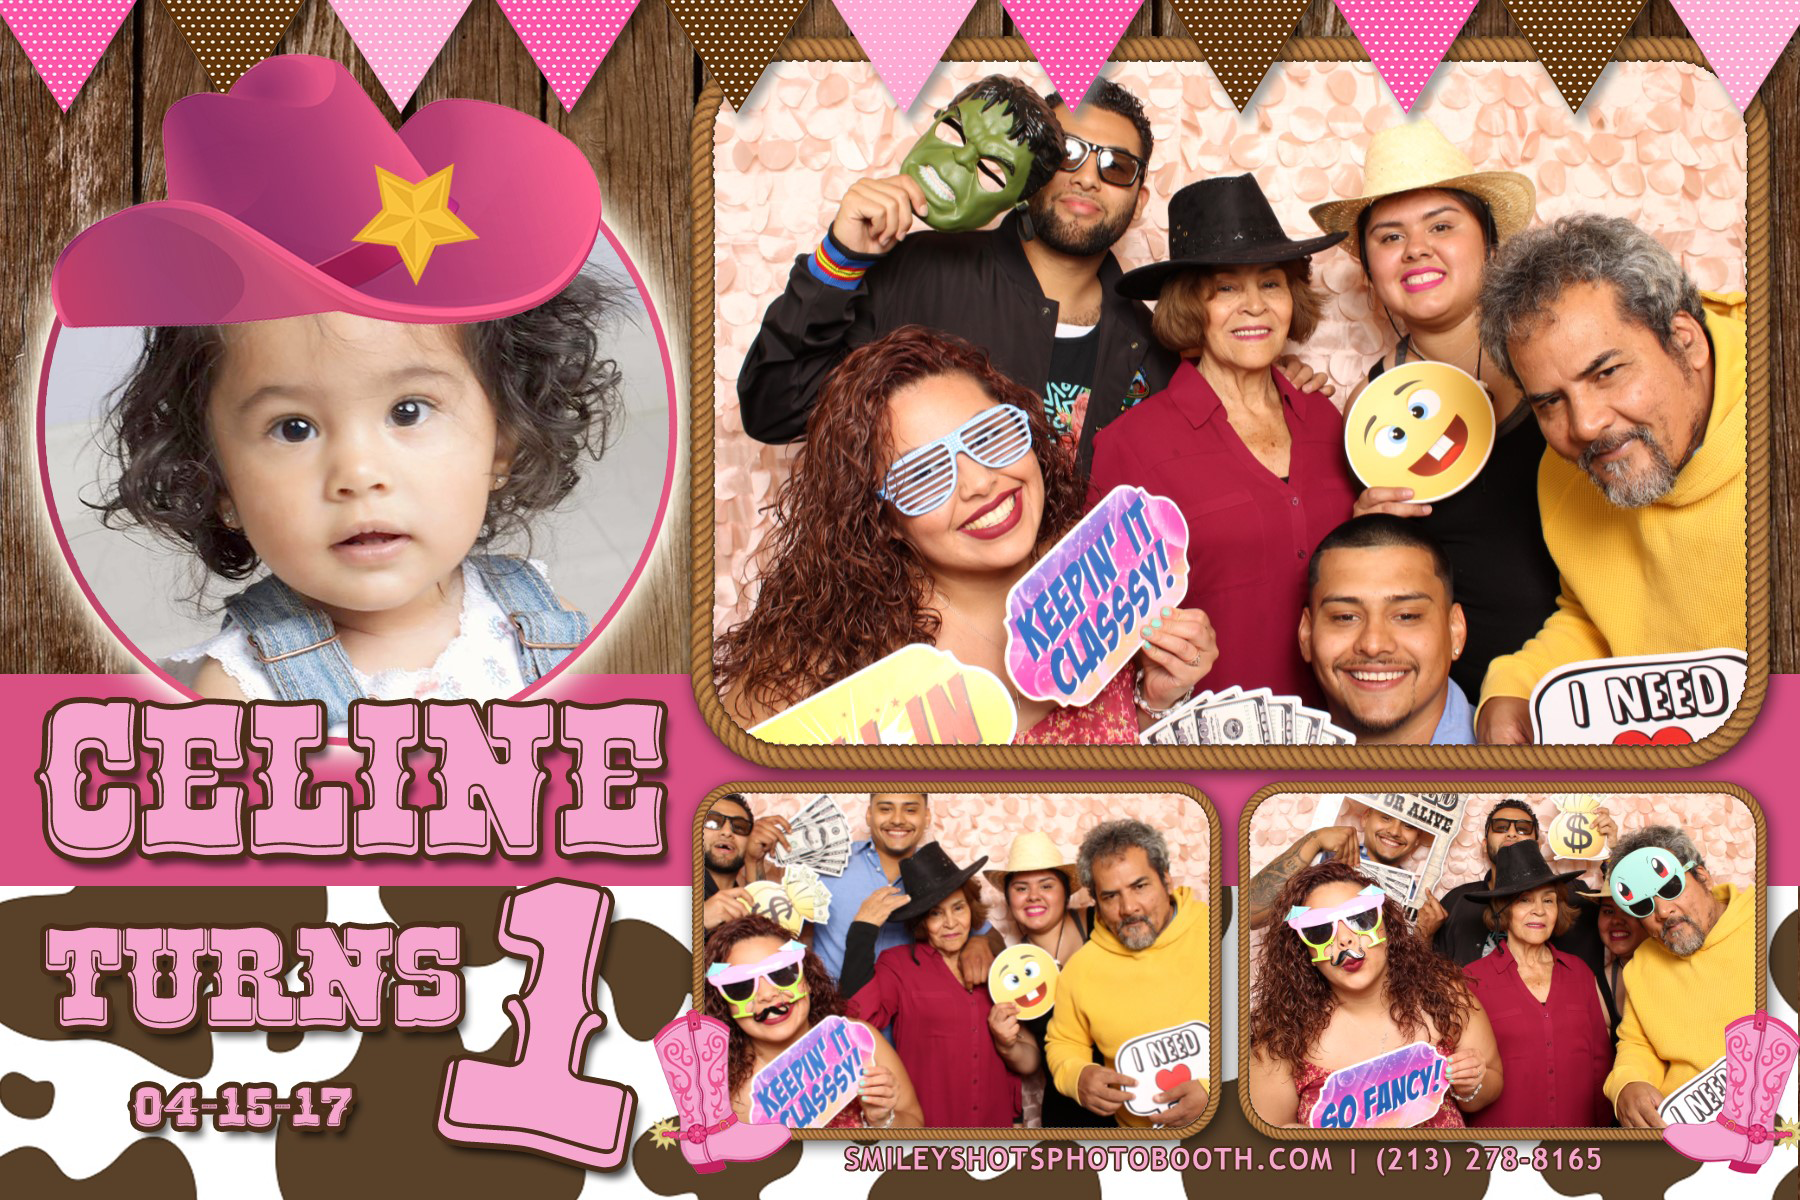 Celine turns 1 Smiley Shots Photo Booth Photobooth (28).png